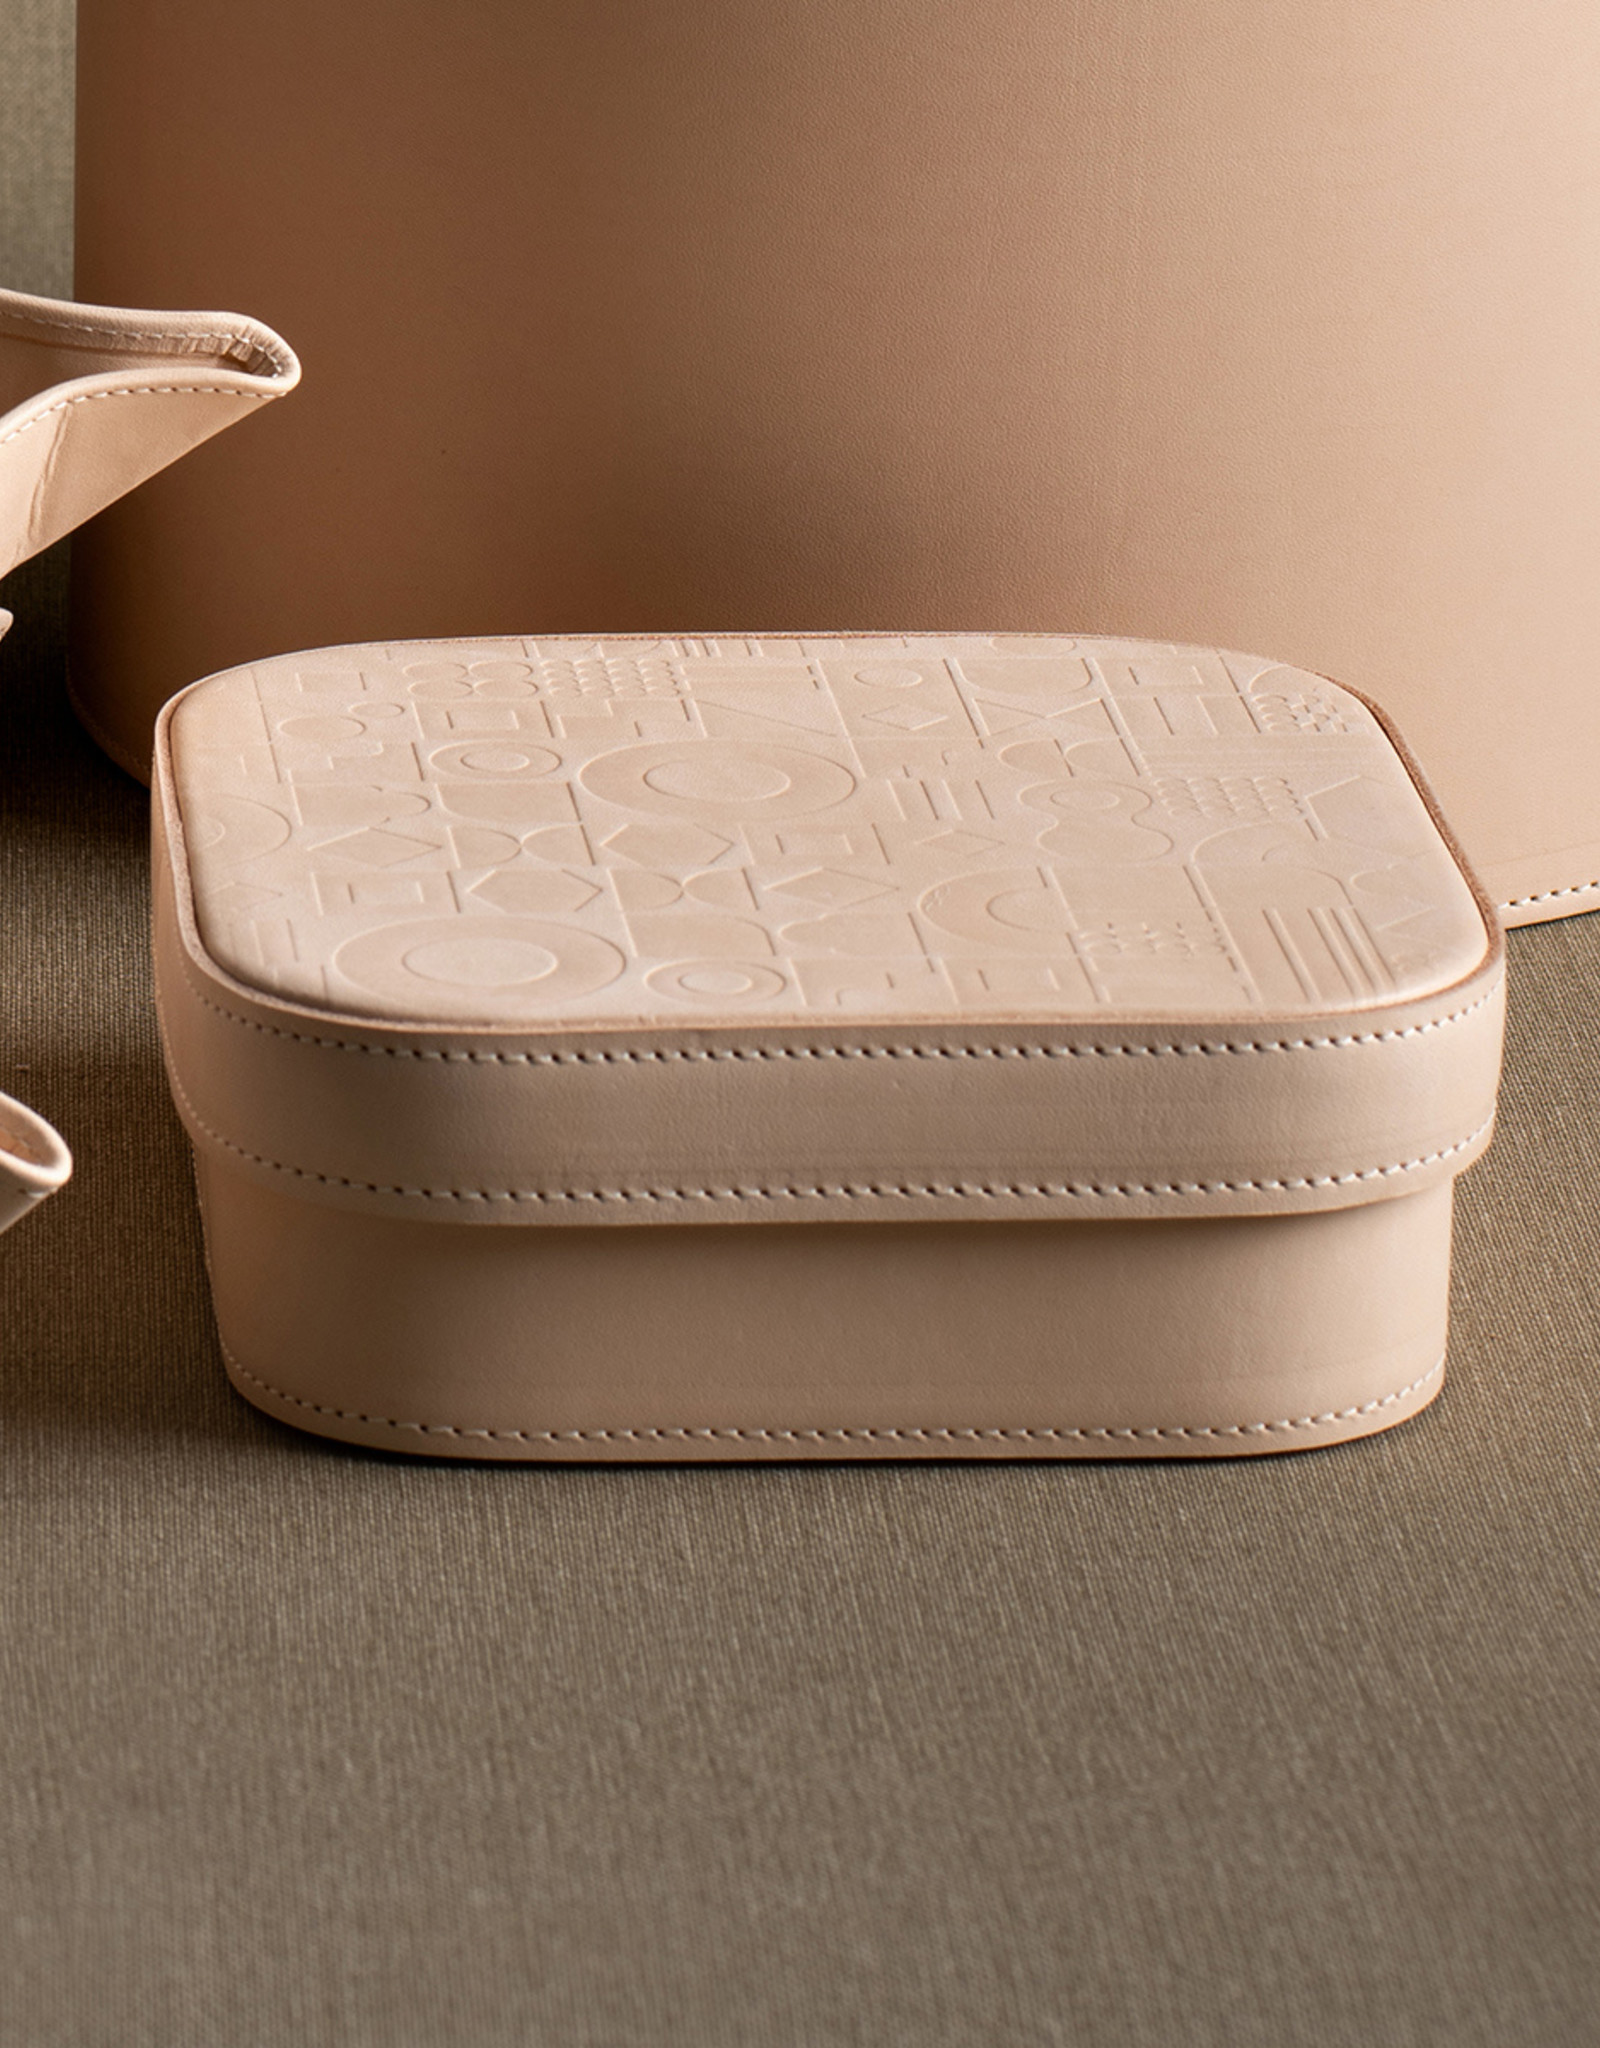 Medium Leather Embossed Box by Carl Cavallius for Palmgrens | Undyed leather